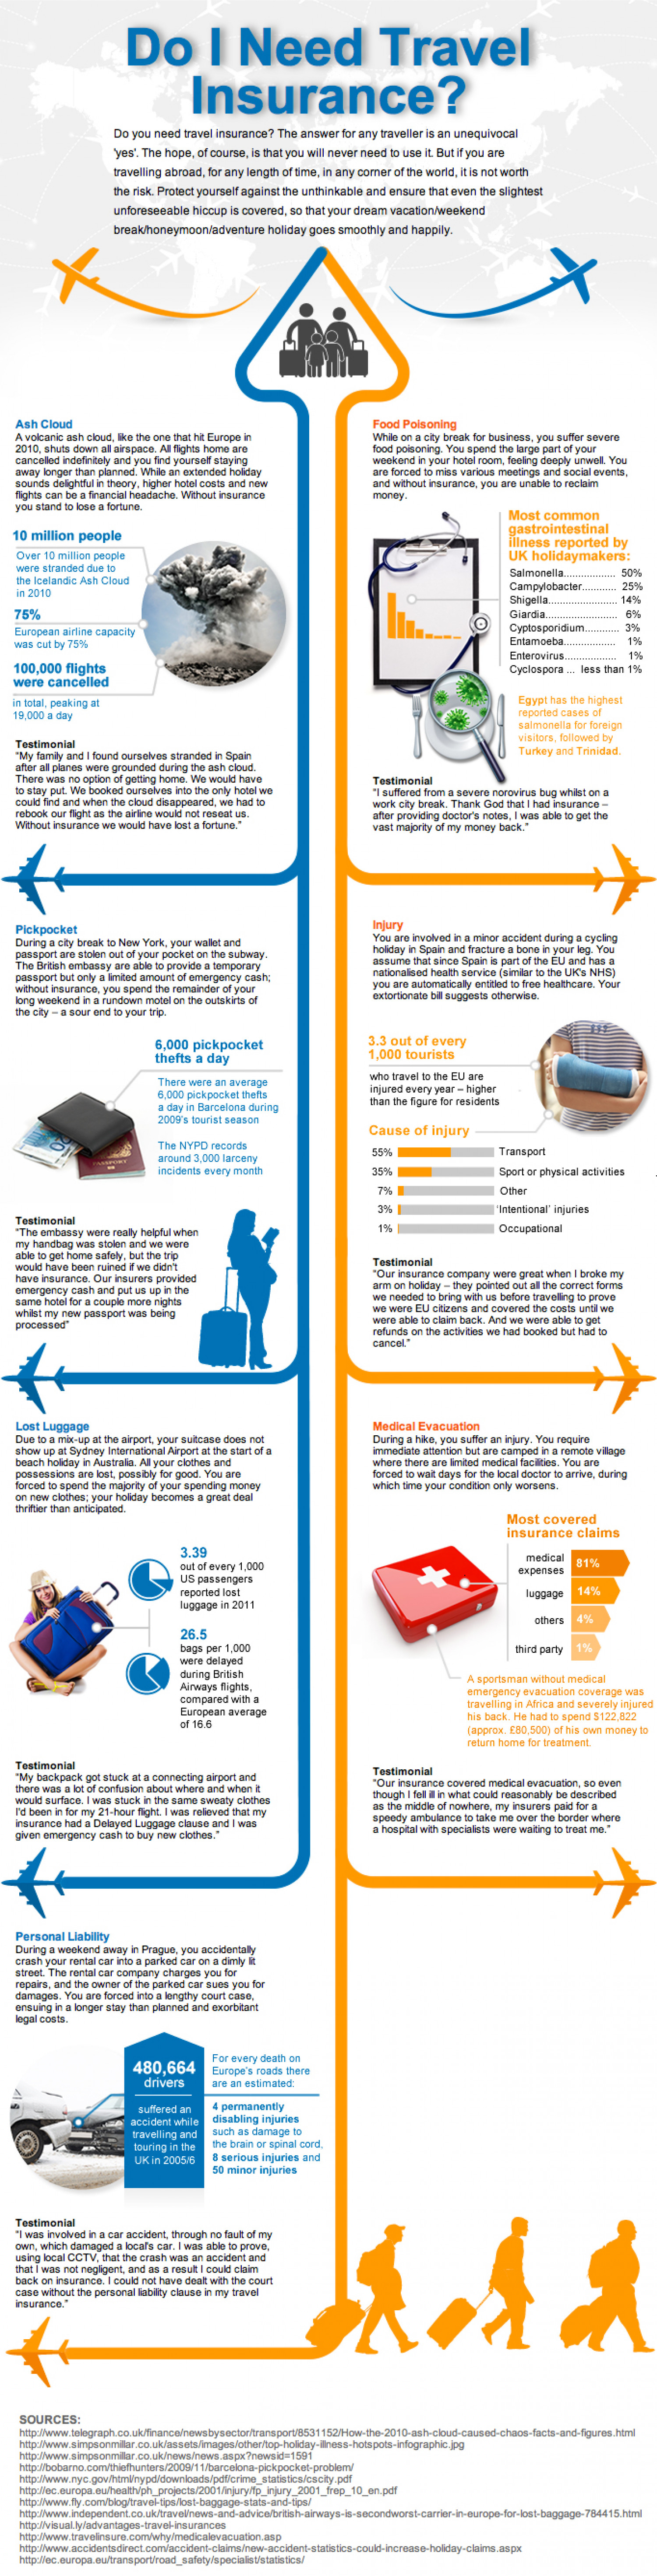 Do I Really Need Travel Insurance? Infographic